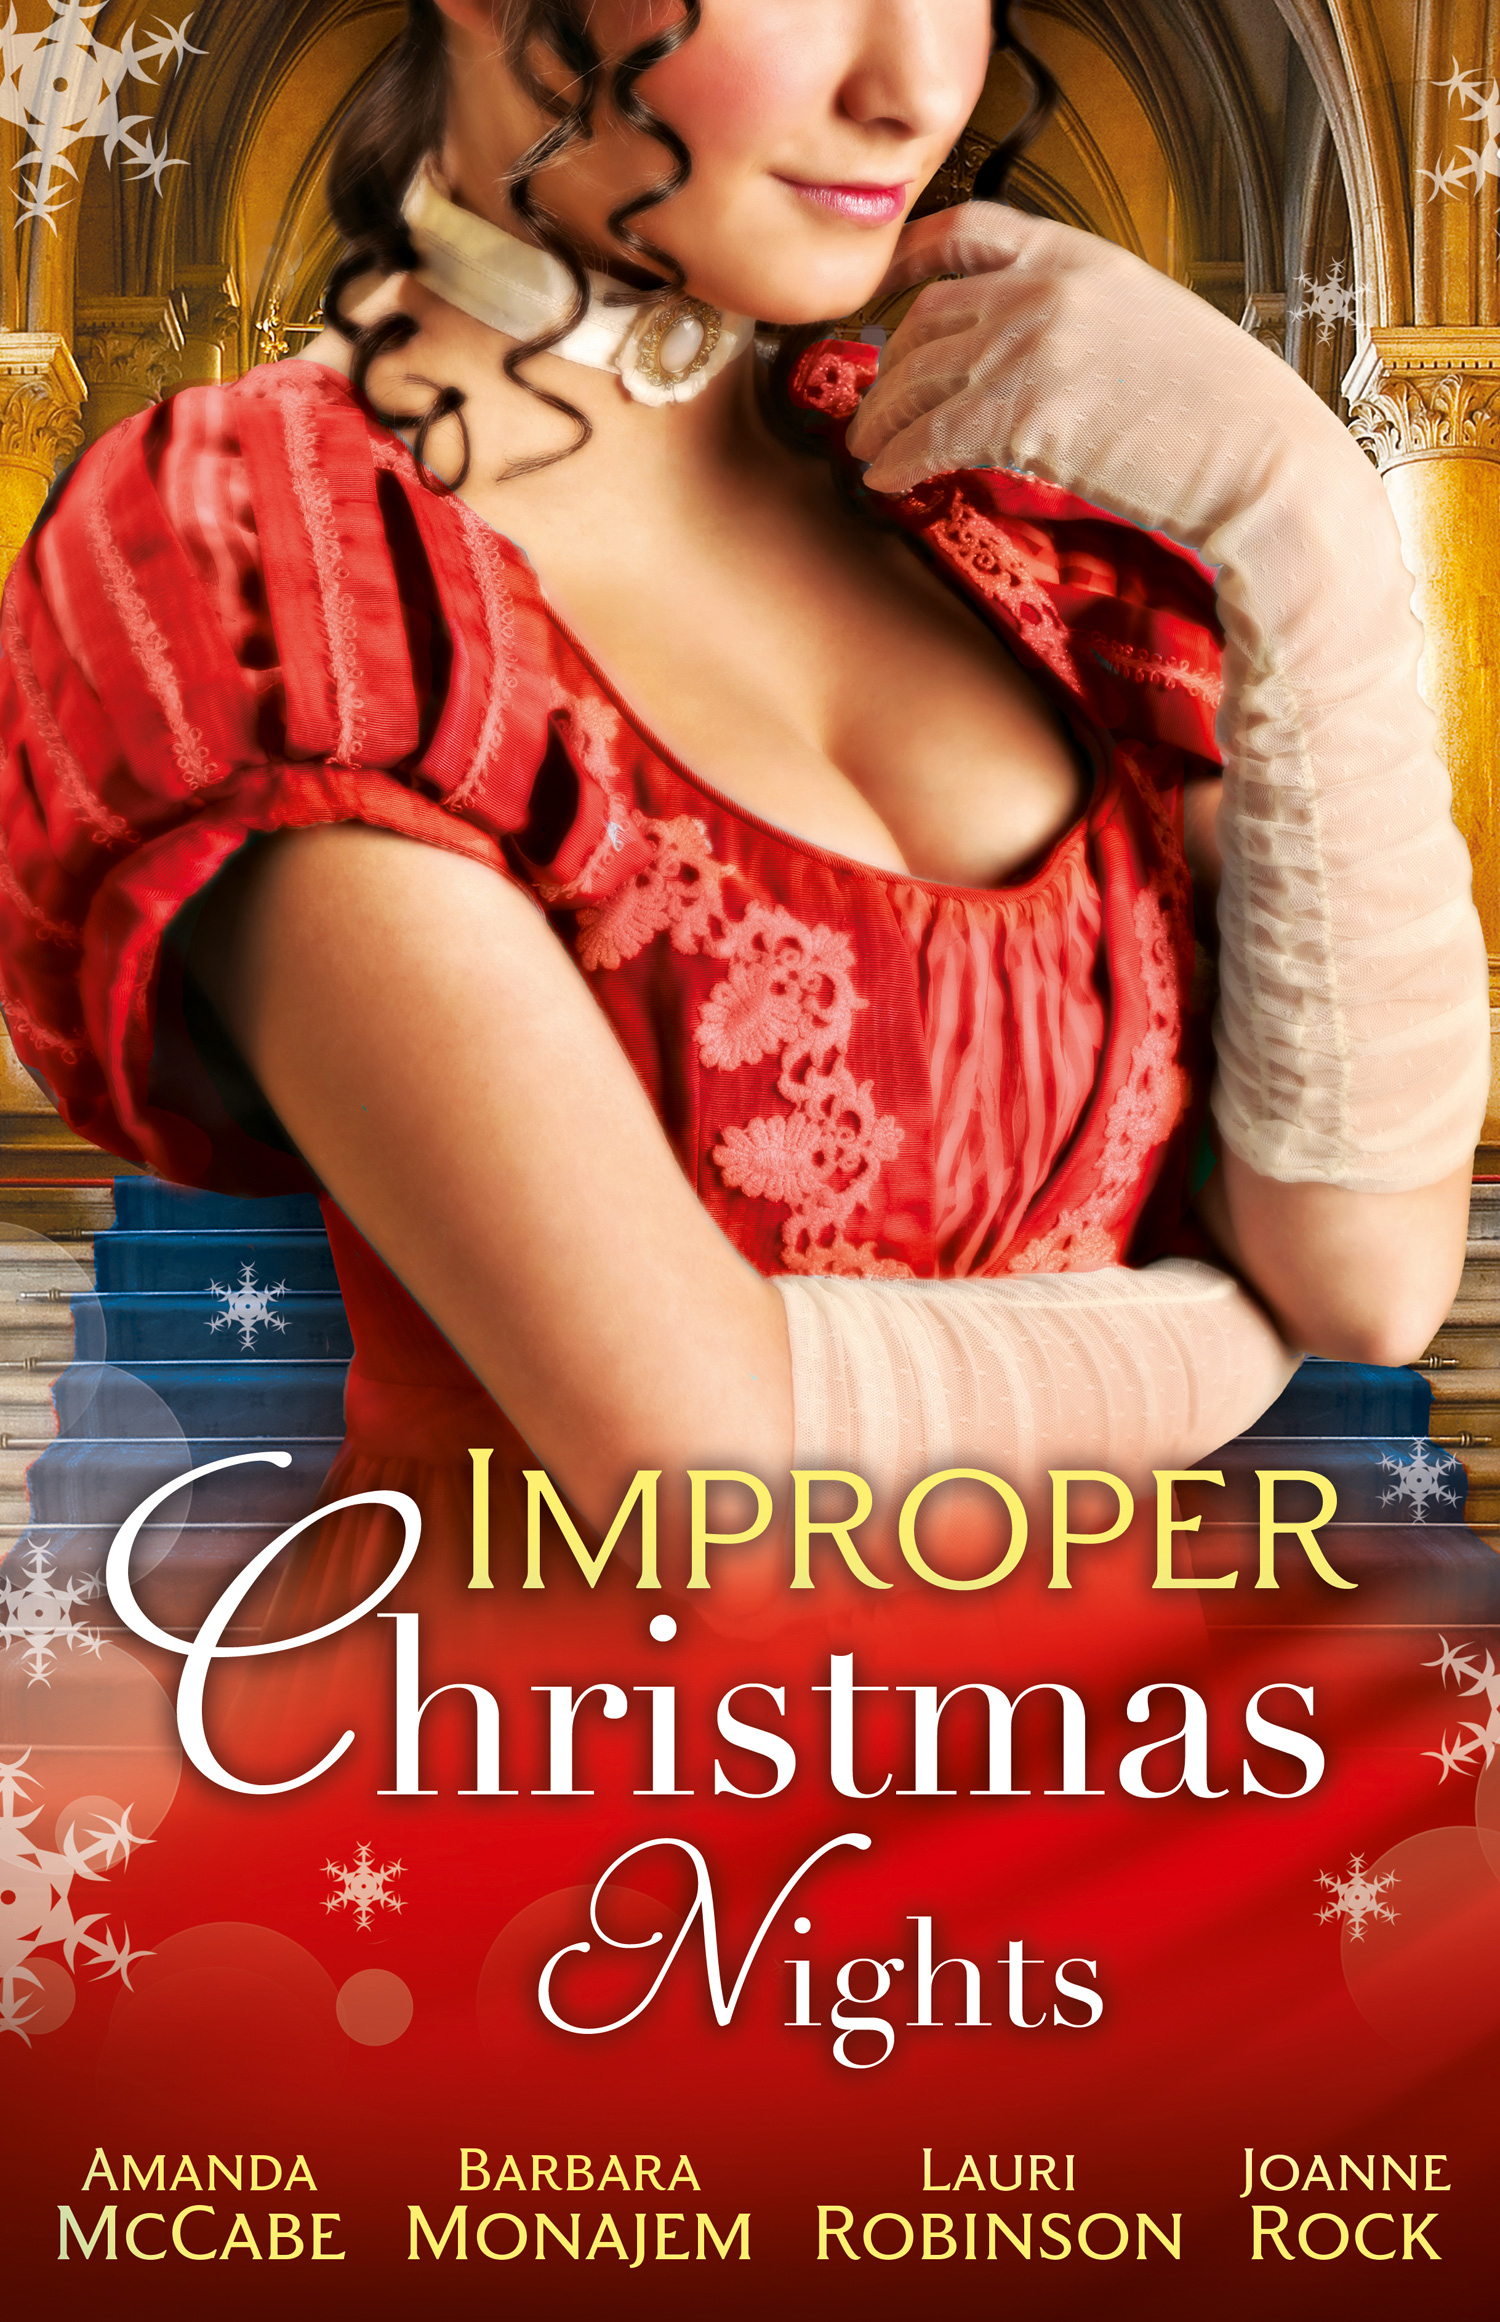 Improper Christmas Nights